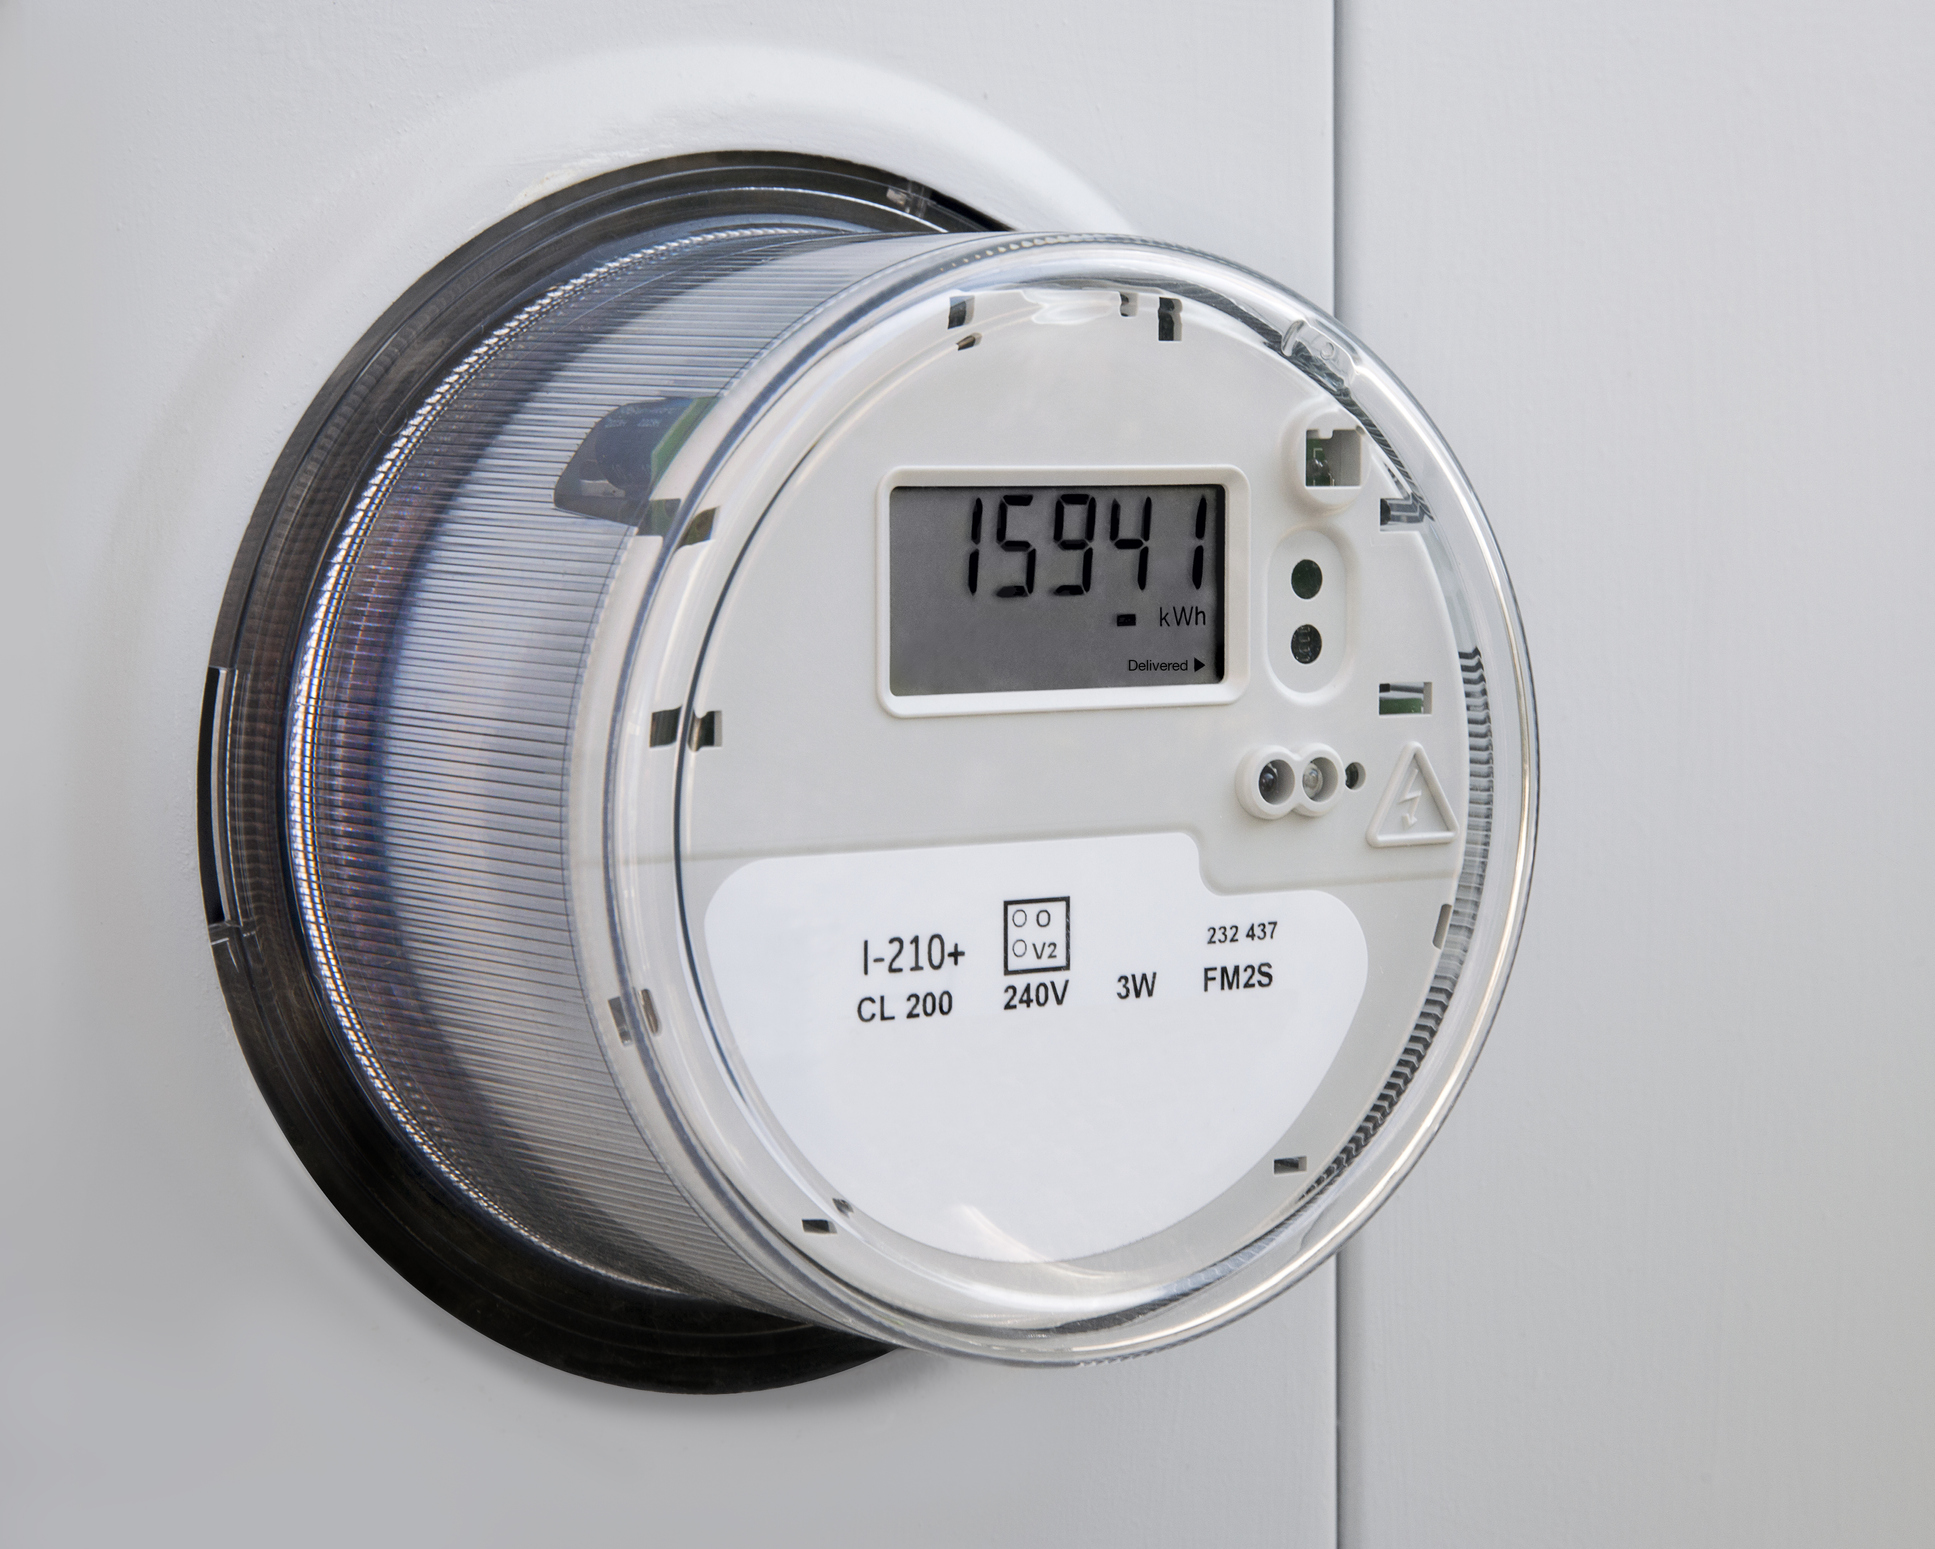 A smart electric meter